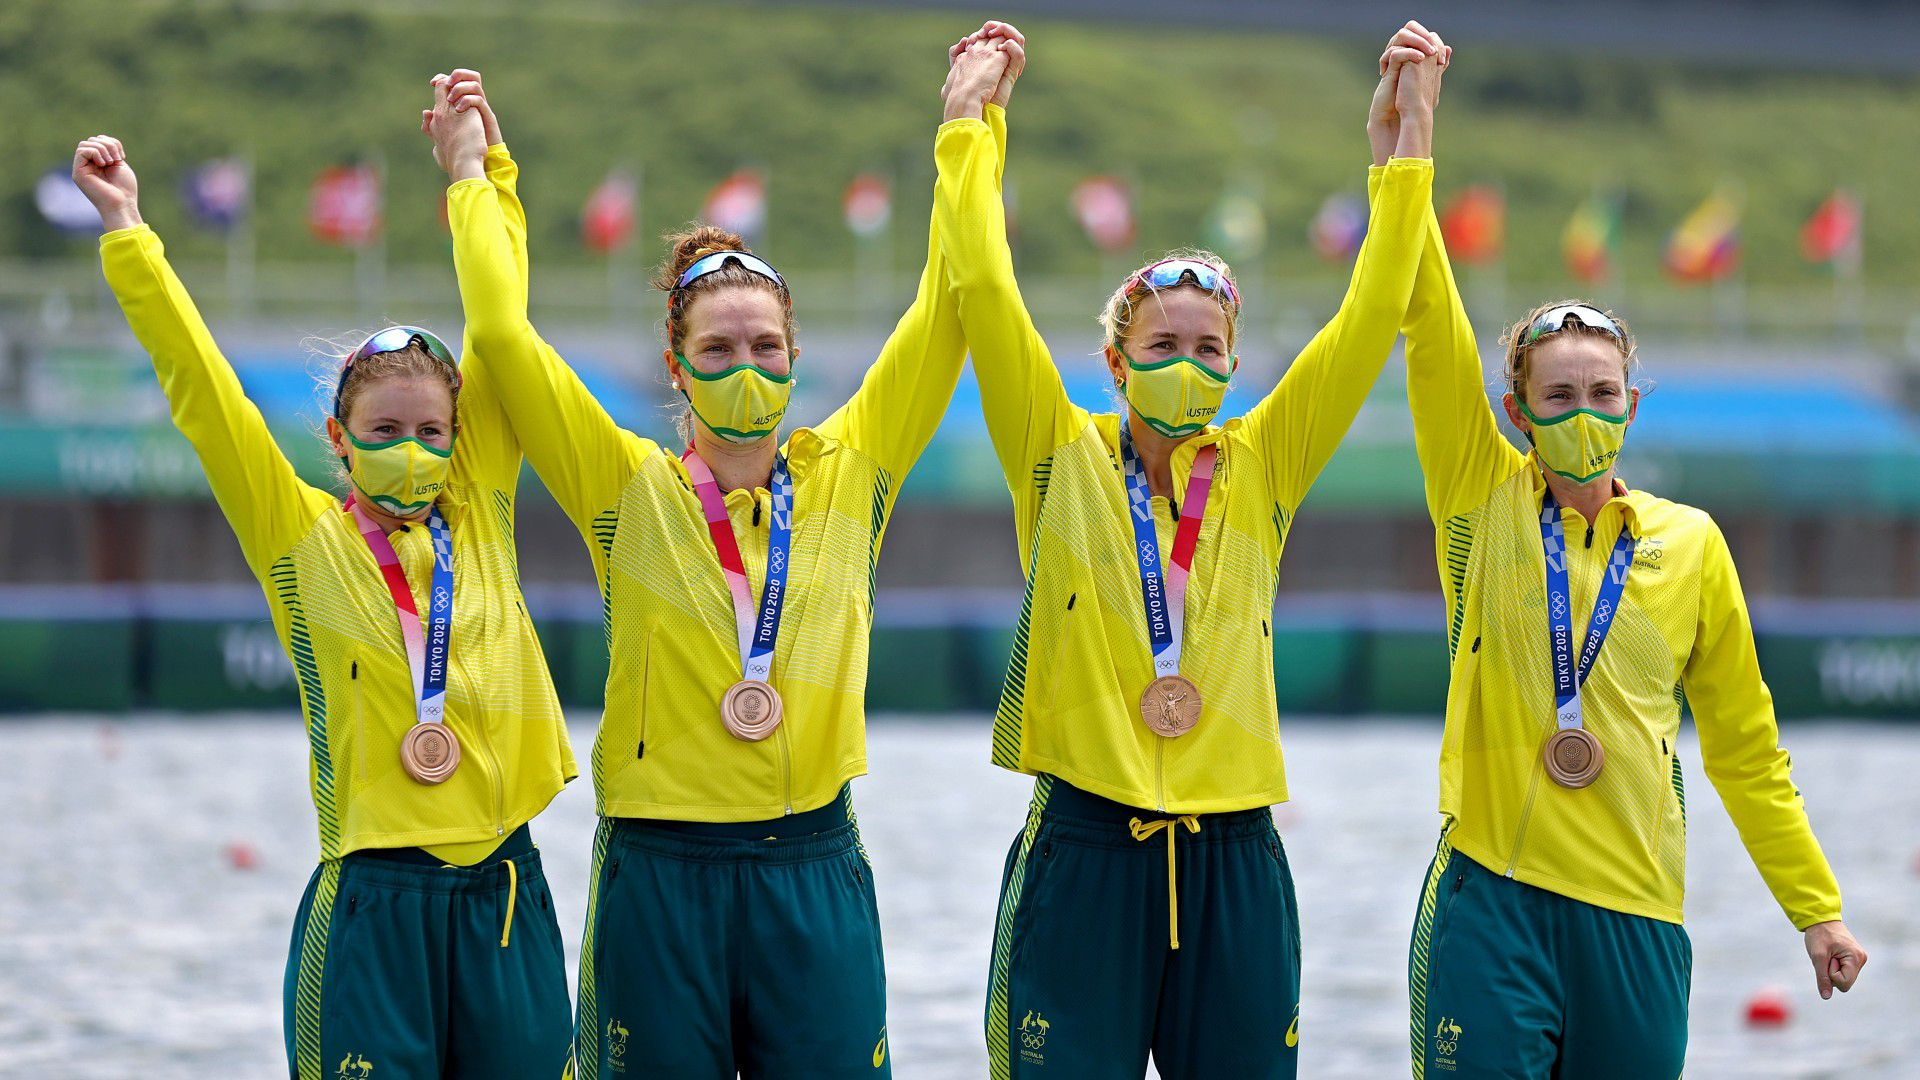 Incredible mishap from Germany leads to surprise bronze for Australia's women's quad sculls team